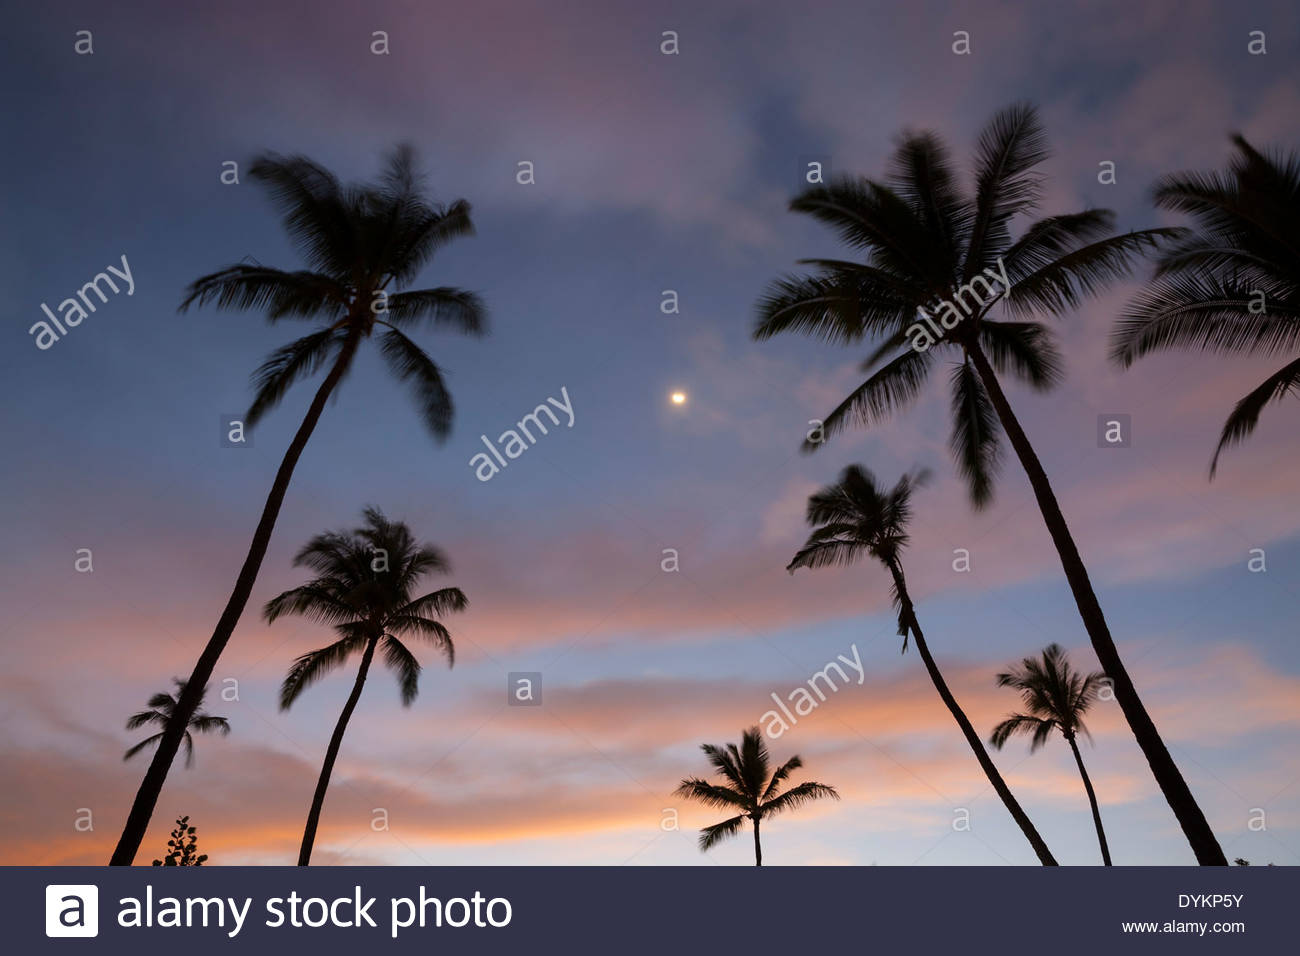 The moon shines between coconut palm trees (Cocos nucifera) at sunset at Makena Beach, Maui, Hawai`i. - Stock Image